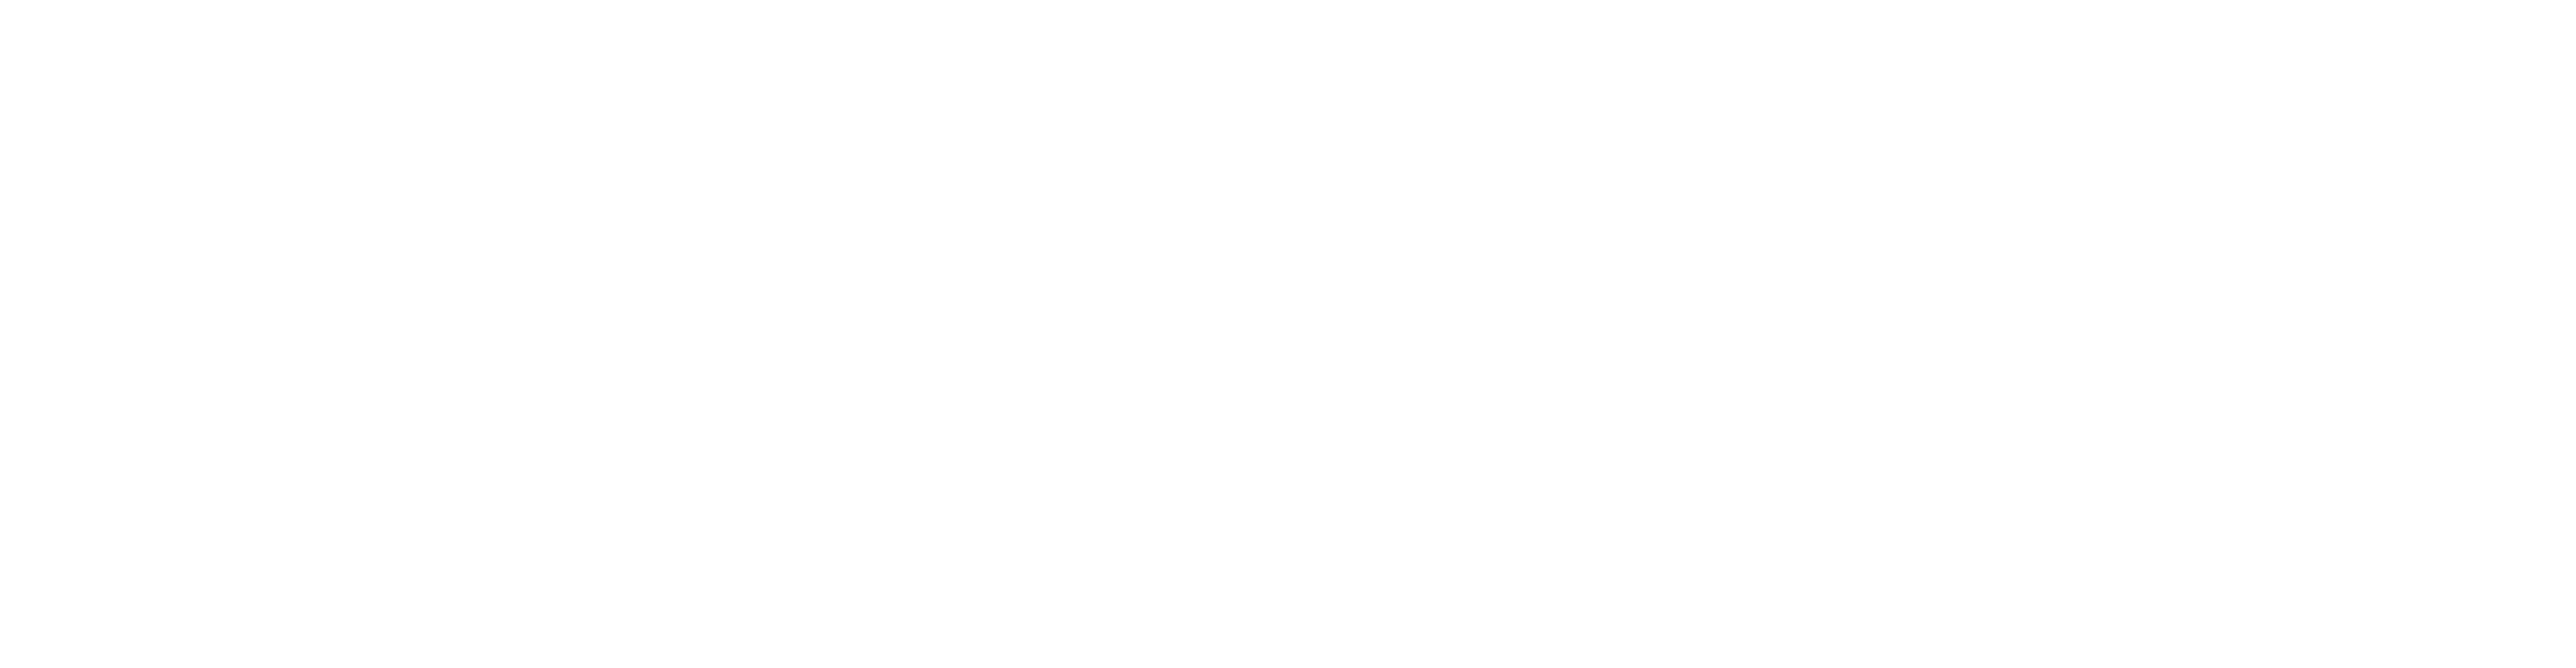 Enrollment Is Now Closed - The Market Gardener's Masterclass